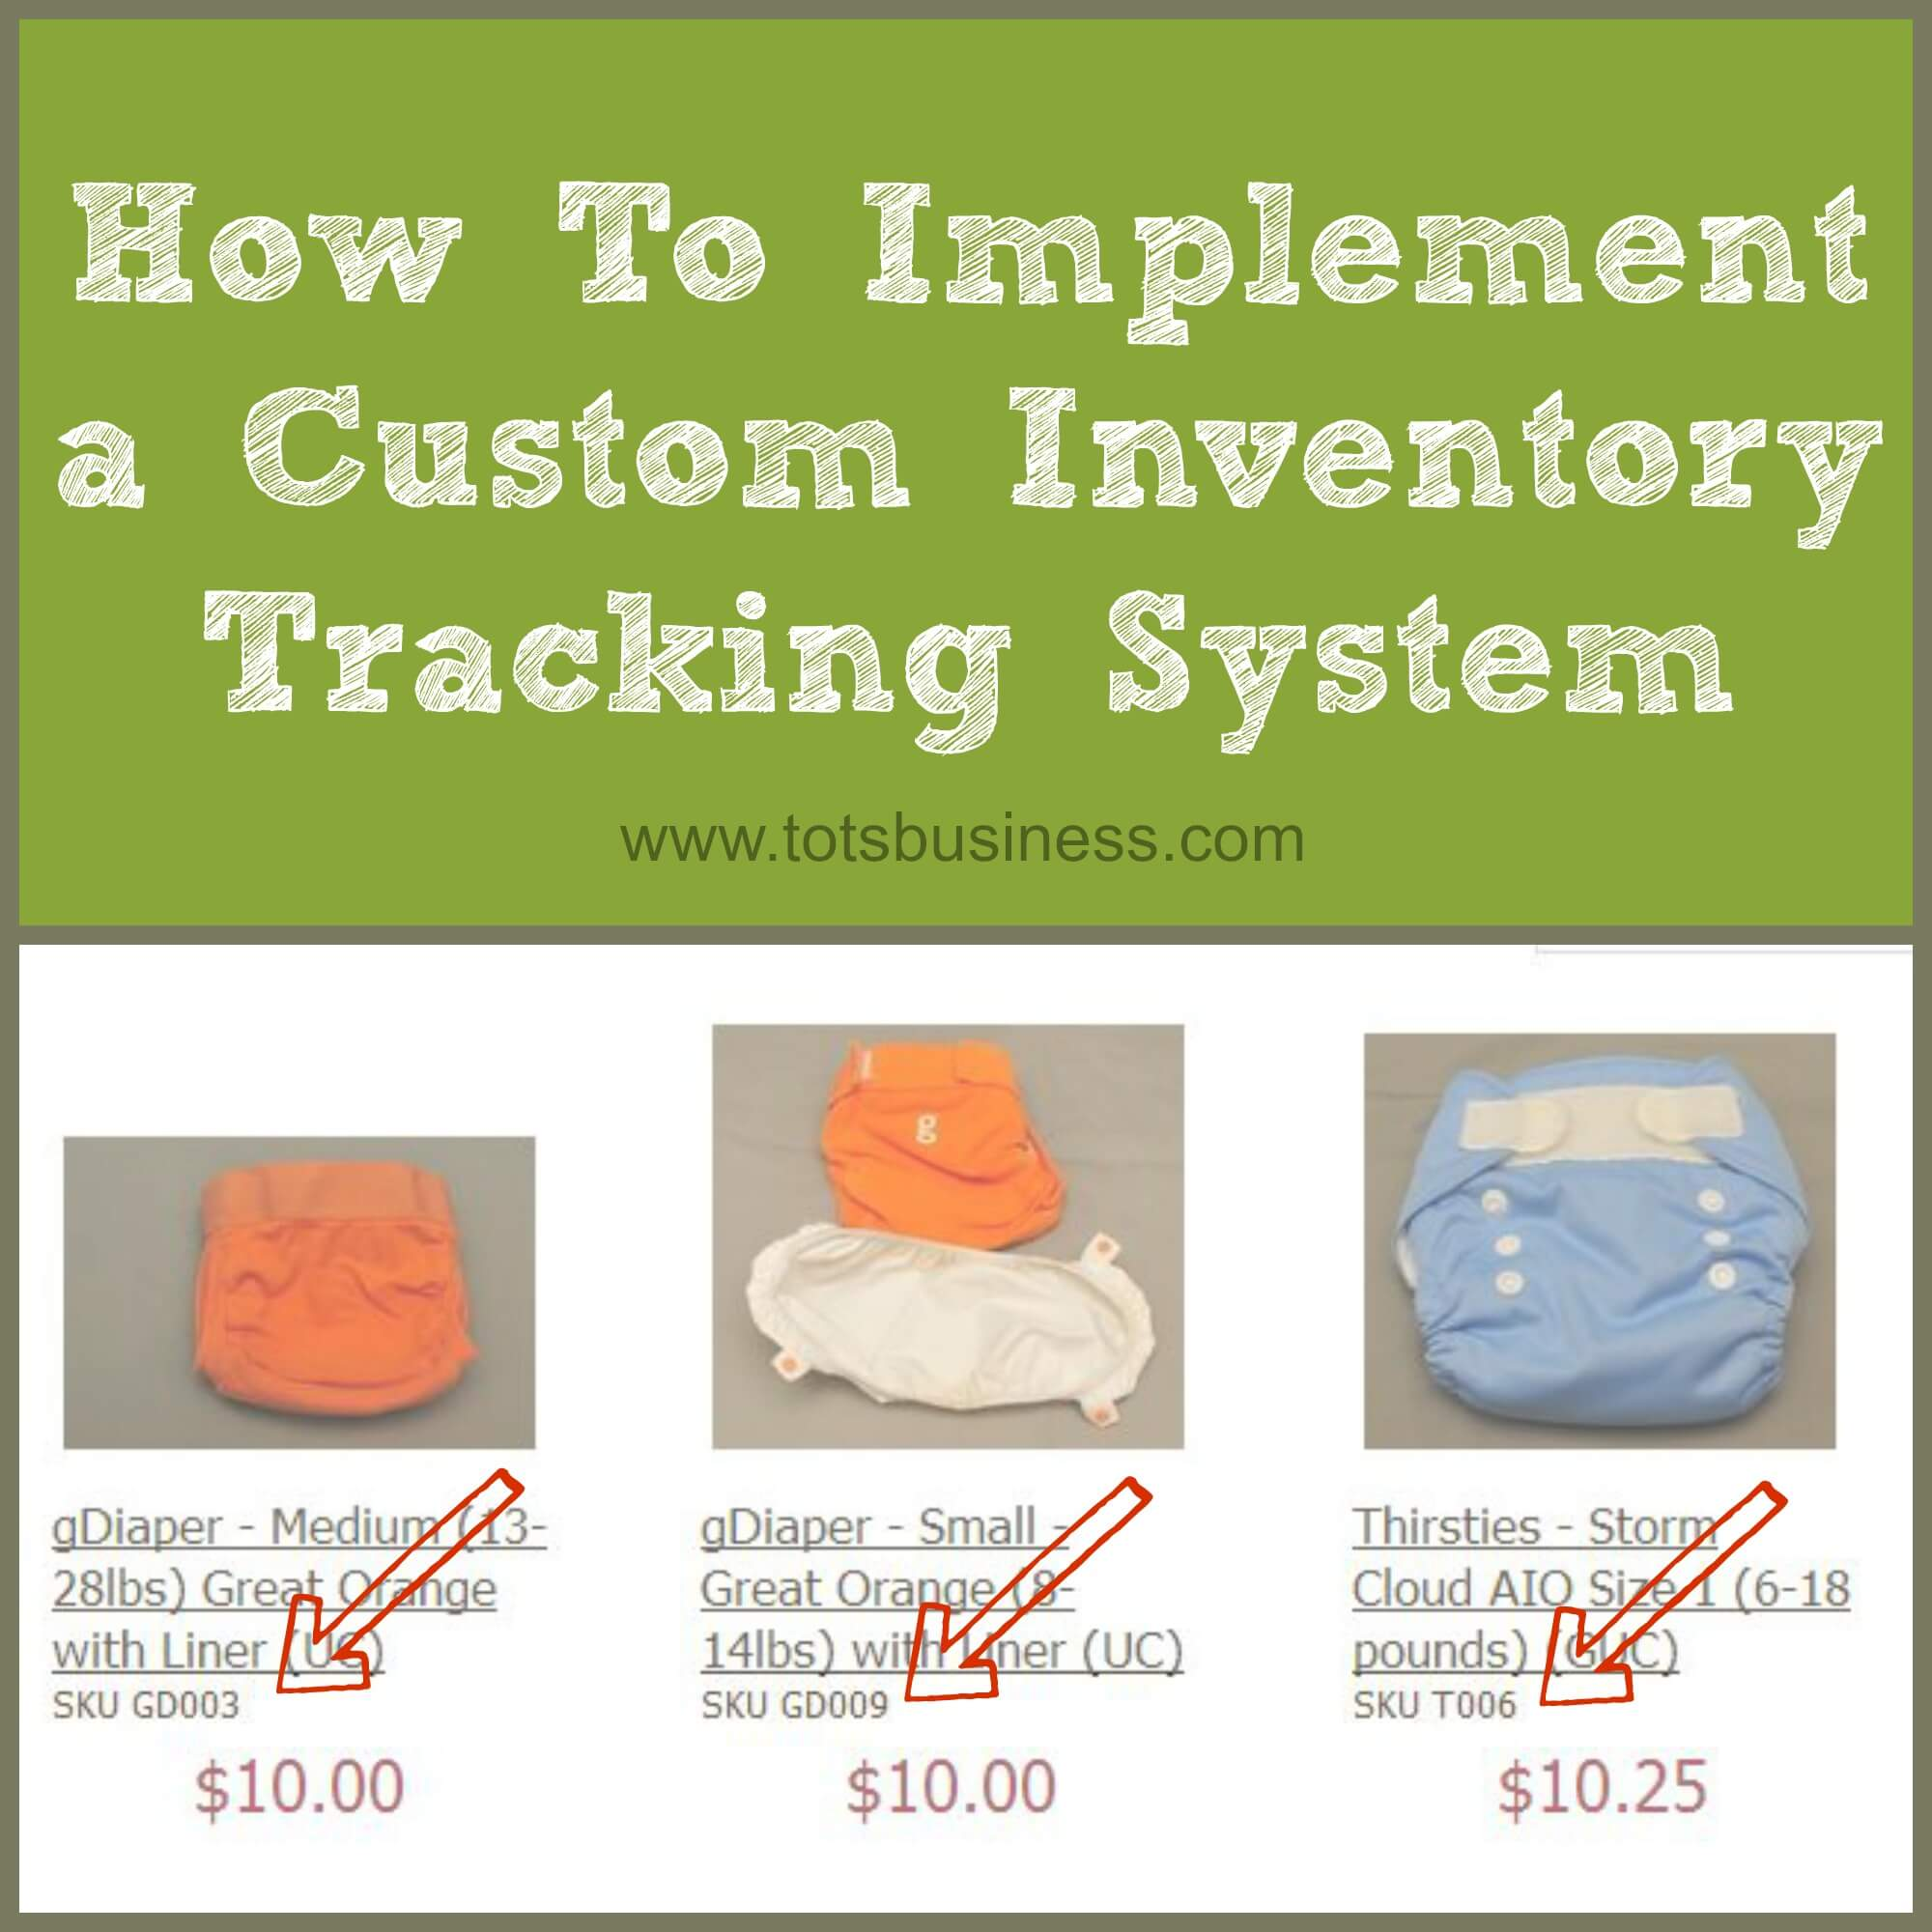 Thinking Outside The Sandbox: Business How-To-Implement-a-Custom-Inventory-Tracking-System How To Implement a Custom Inventory Tracking System All Posts Small Business TOTS Business  small business sku inventory how to business advice